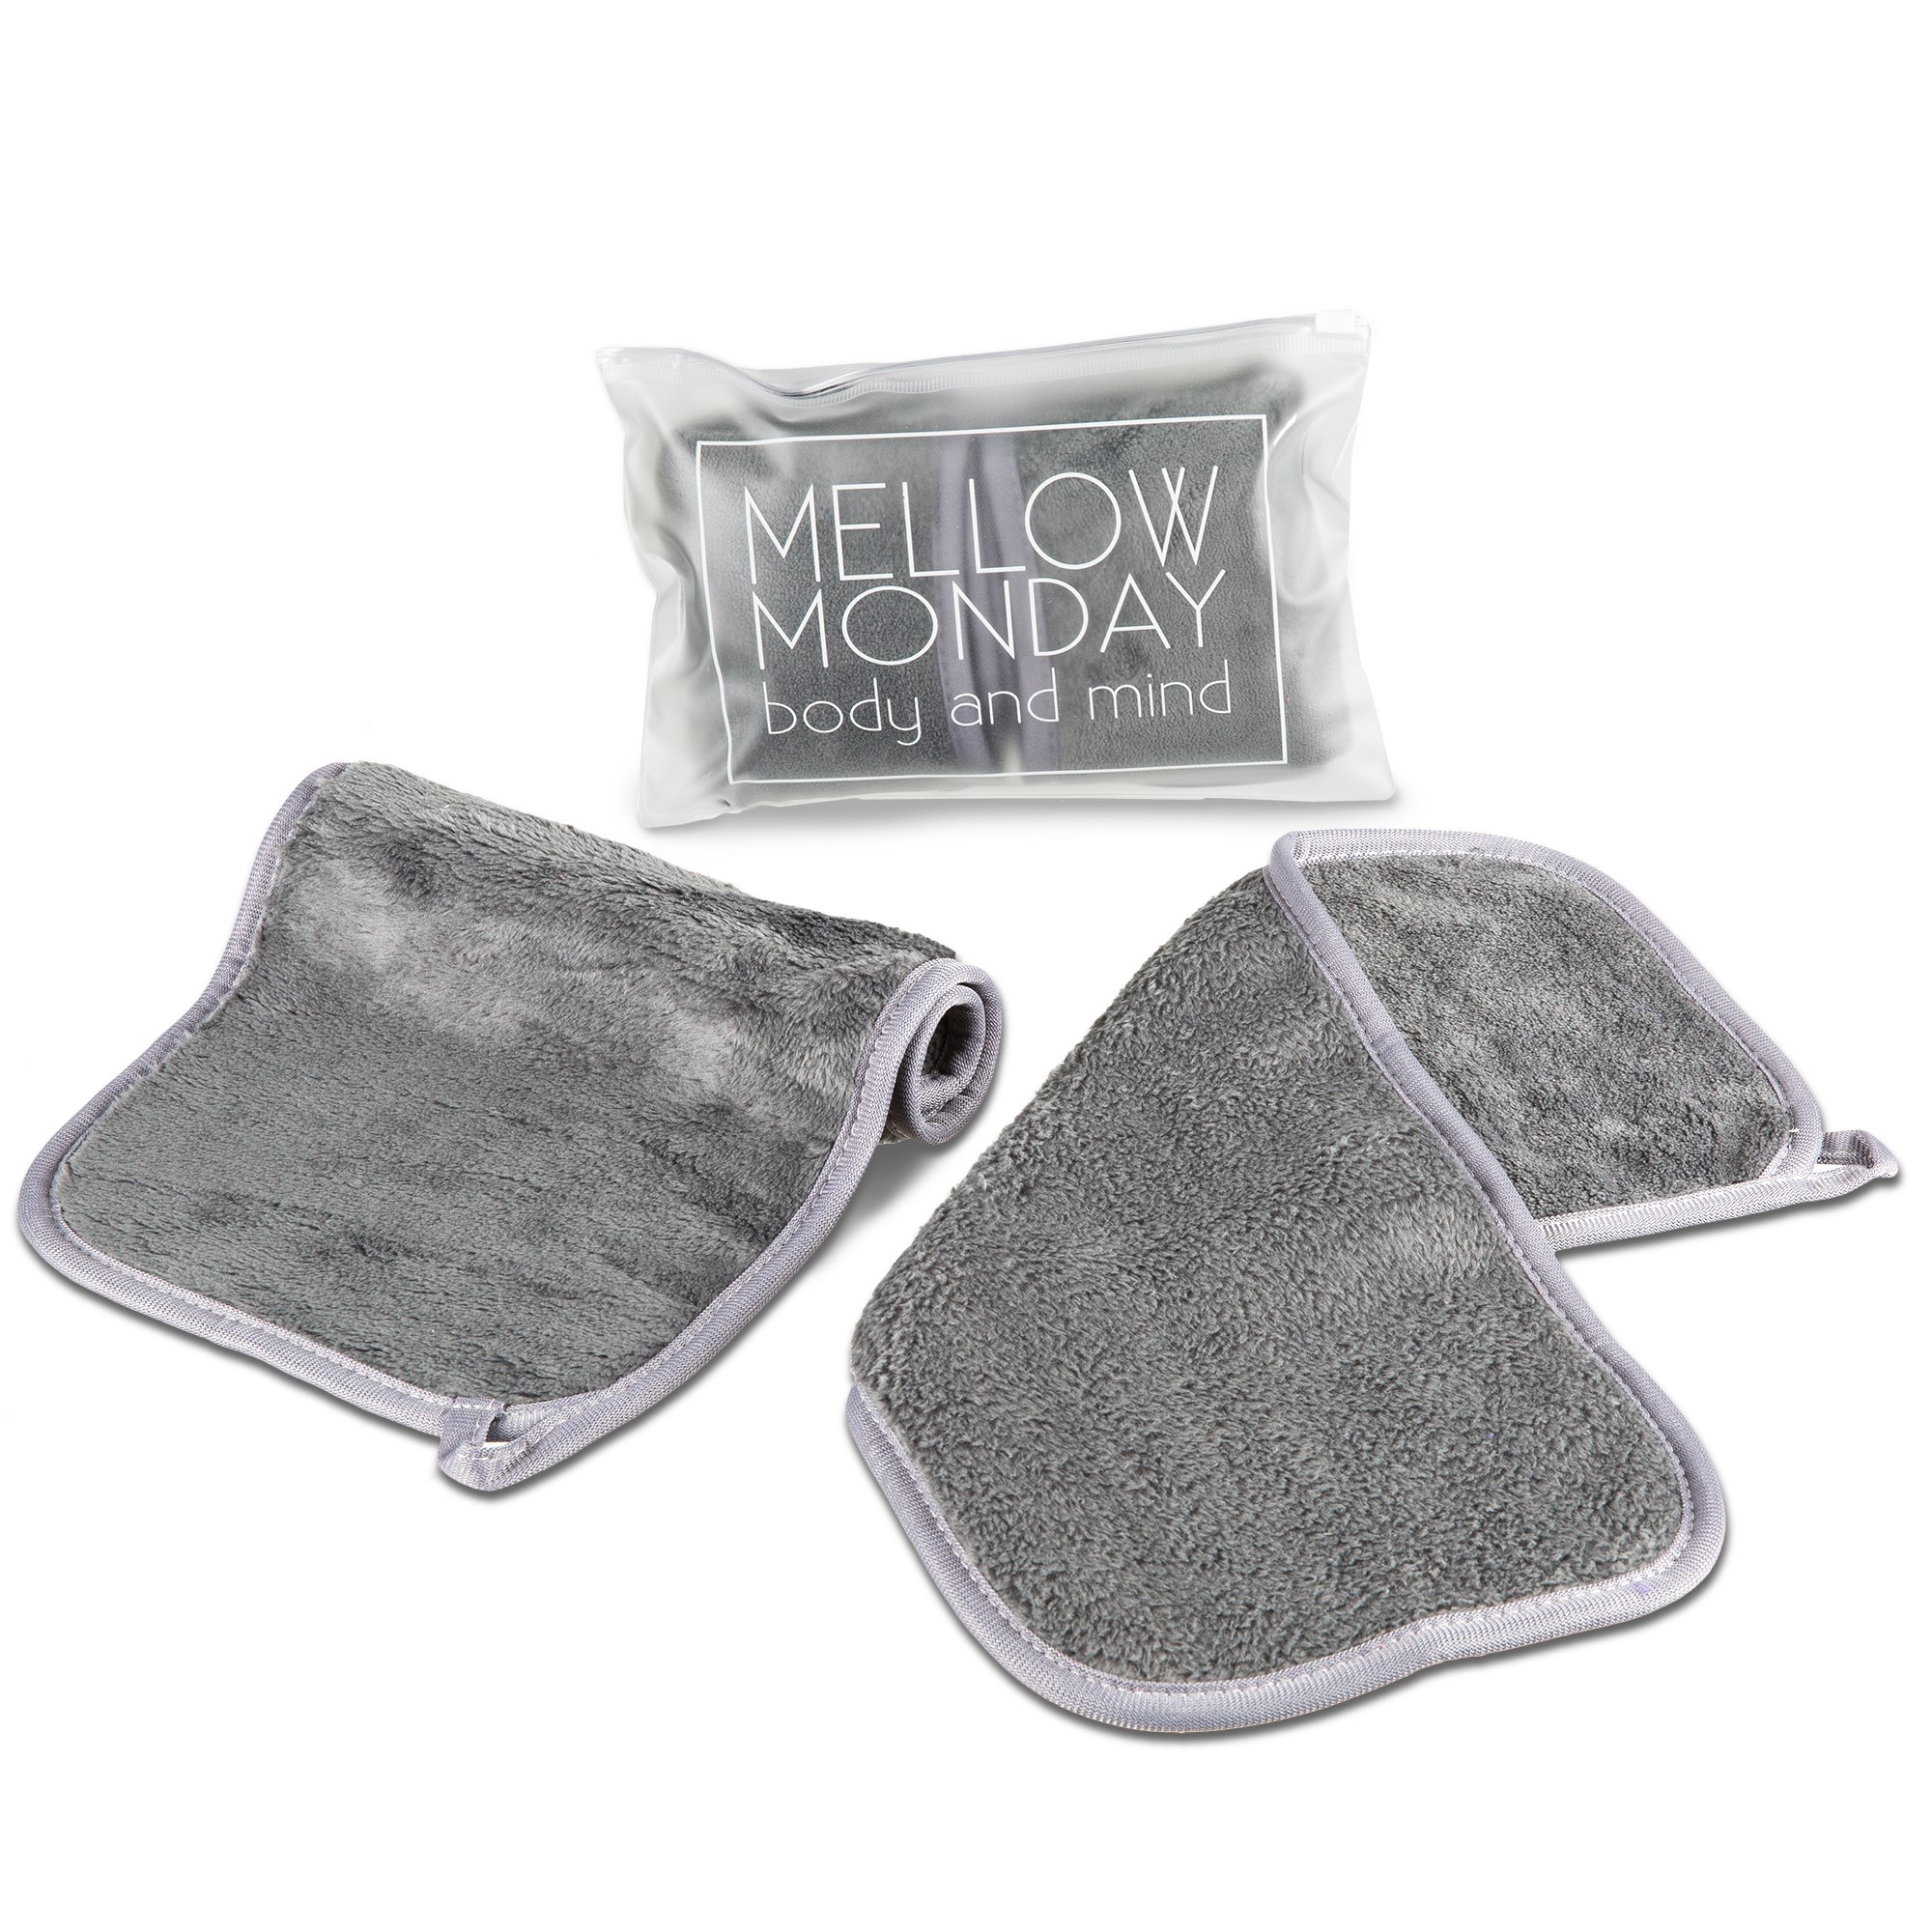 Makeup Remover Cloth Face Wash Wipes Eye Makeup Waterproof Mascara Removing Cloths Best for Facial Make Up Cleanser Microfiber Cloths, Set of 2 (Gray)